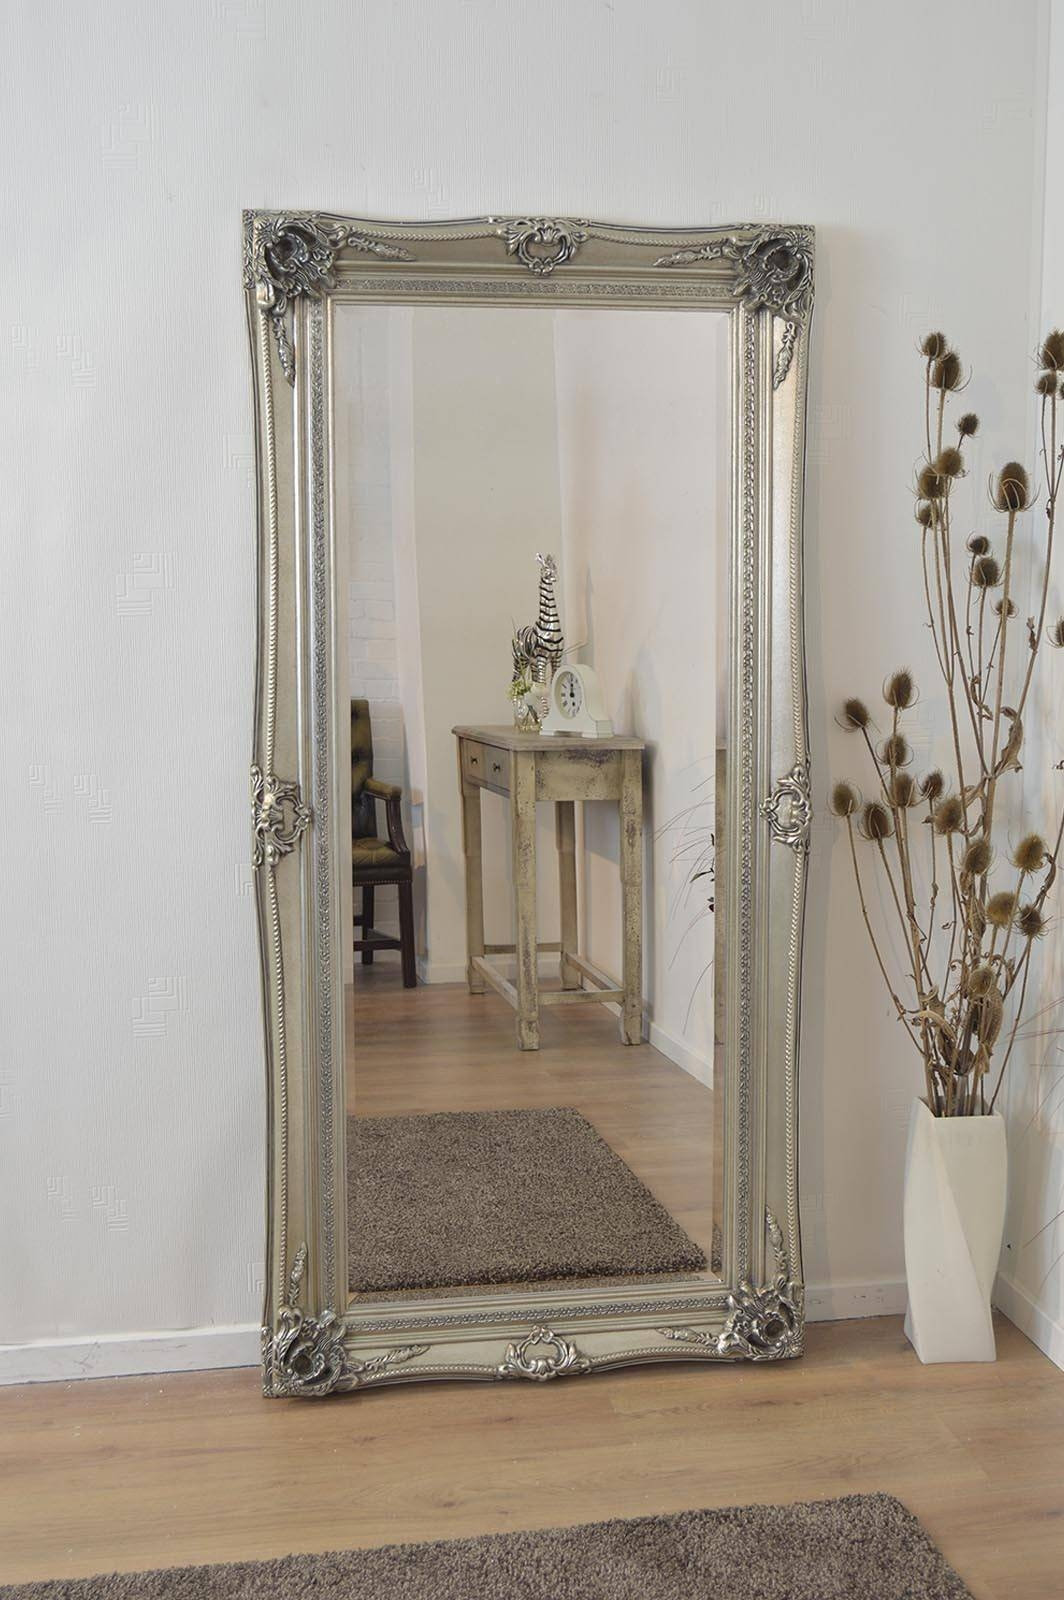 Large Antique Wall Mirror Ornate Frame Antique Ornate Wall Mirrors within Shabby Chic Wall Mirrors (Image 6 of 15)